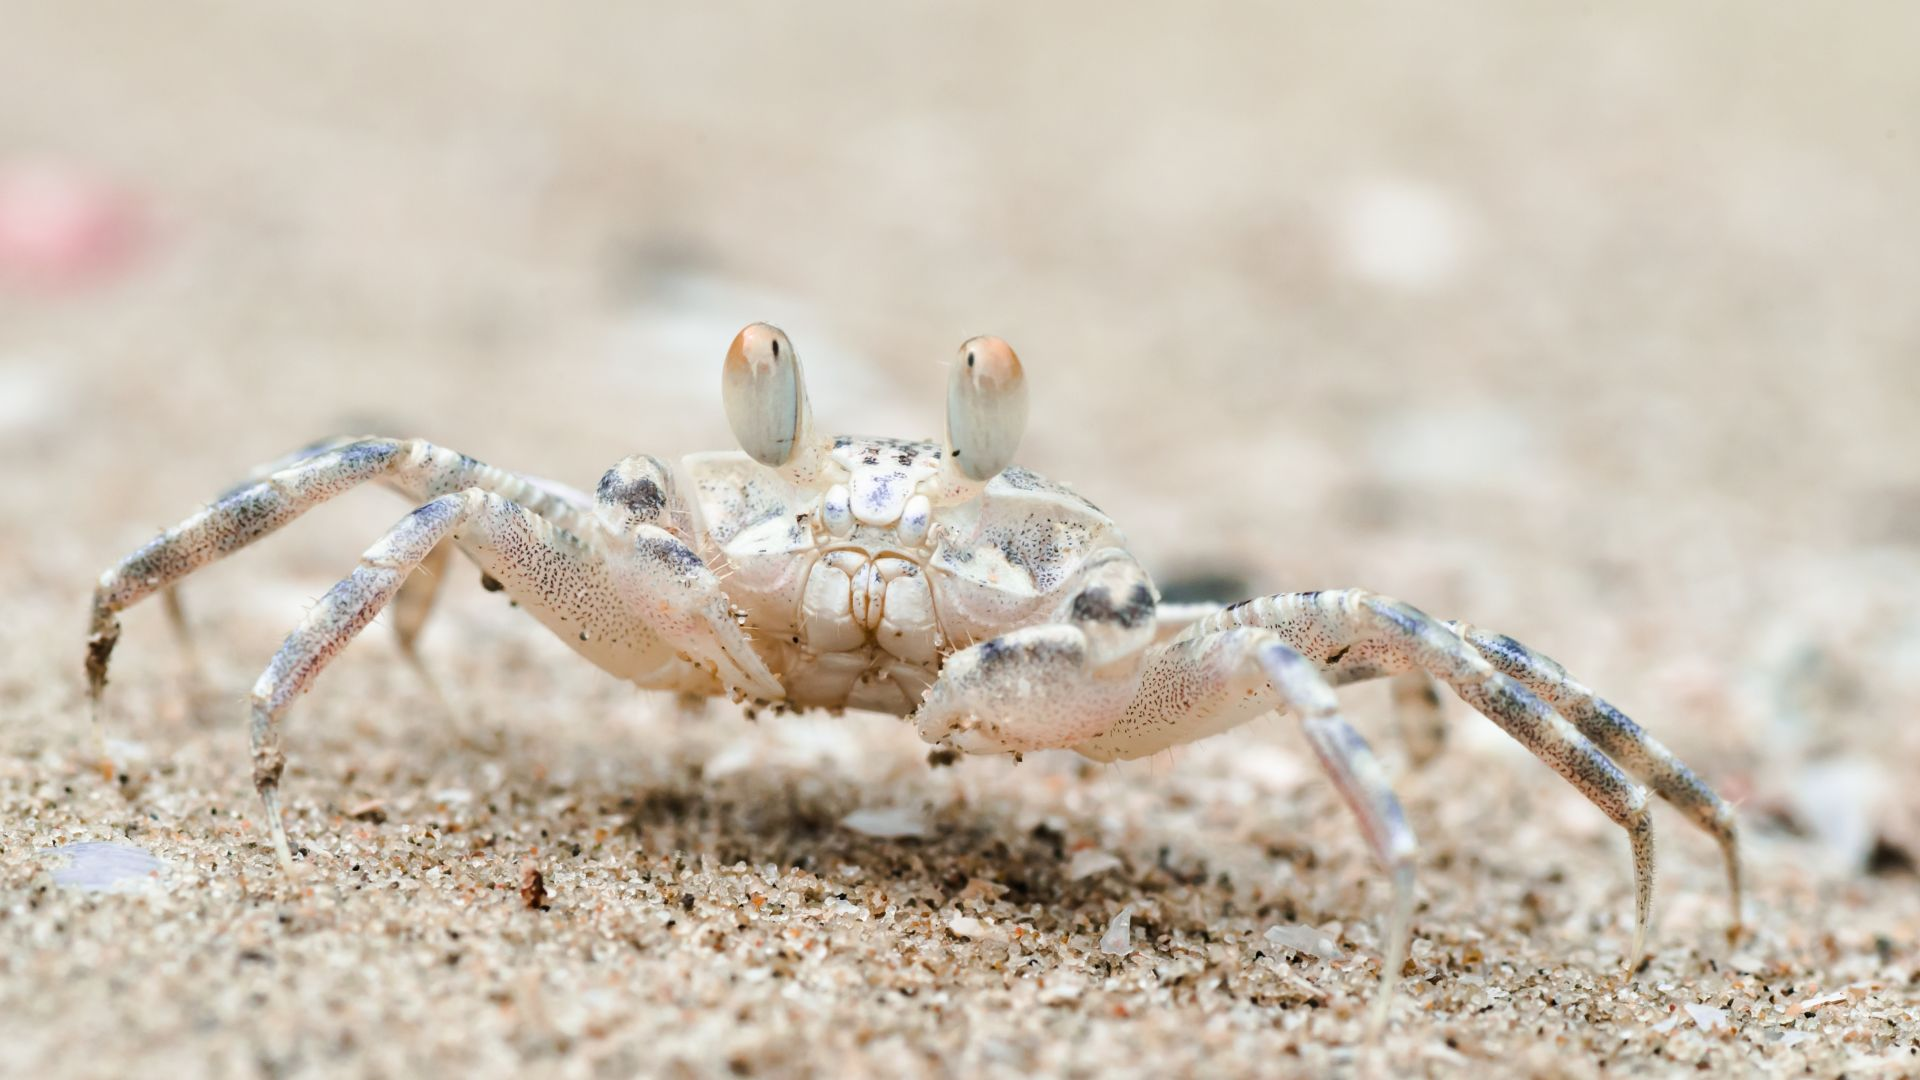 Sand bubbler crab, Khao Sam Roi Yot National Park, Thailand, travel, tourism (horizontal)